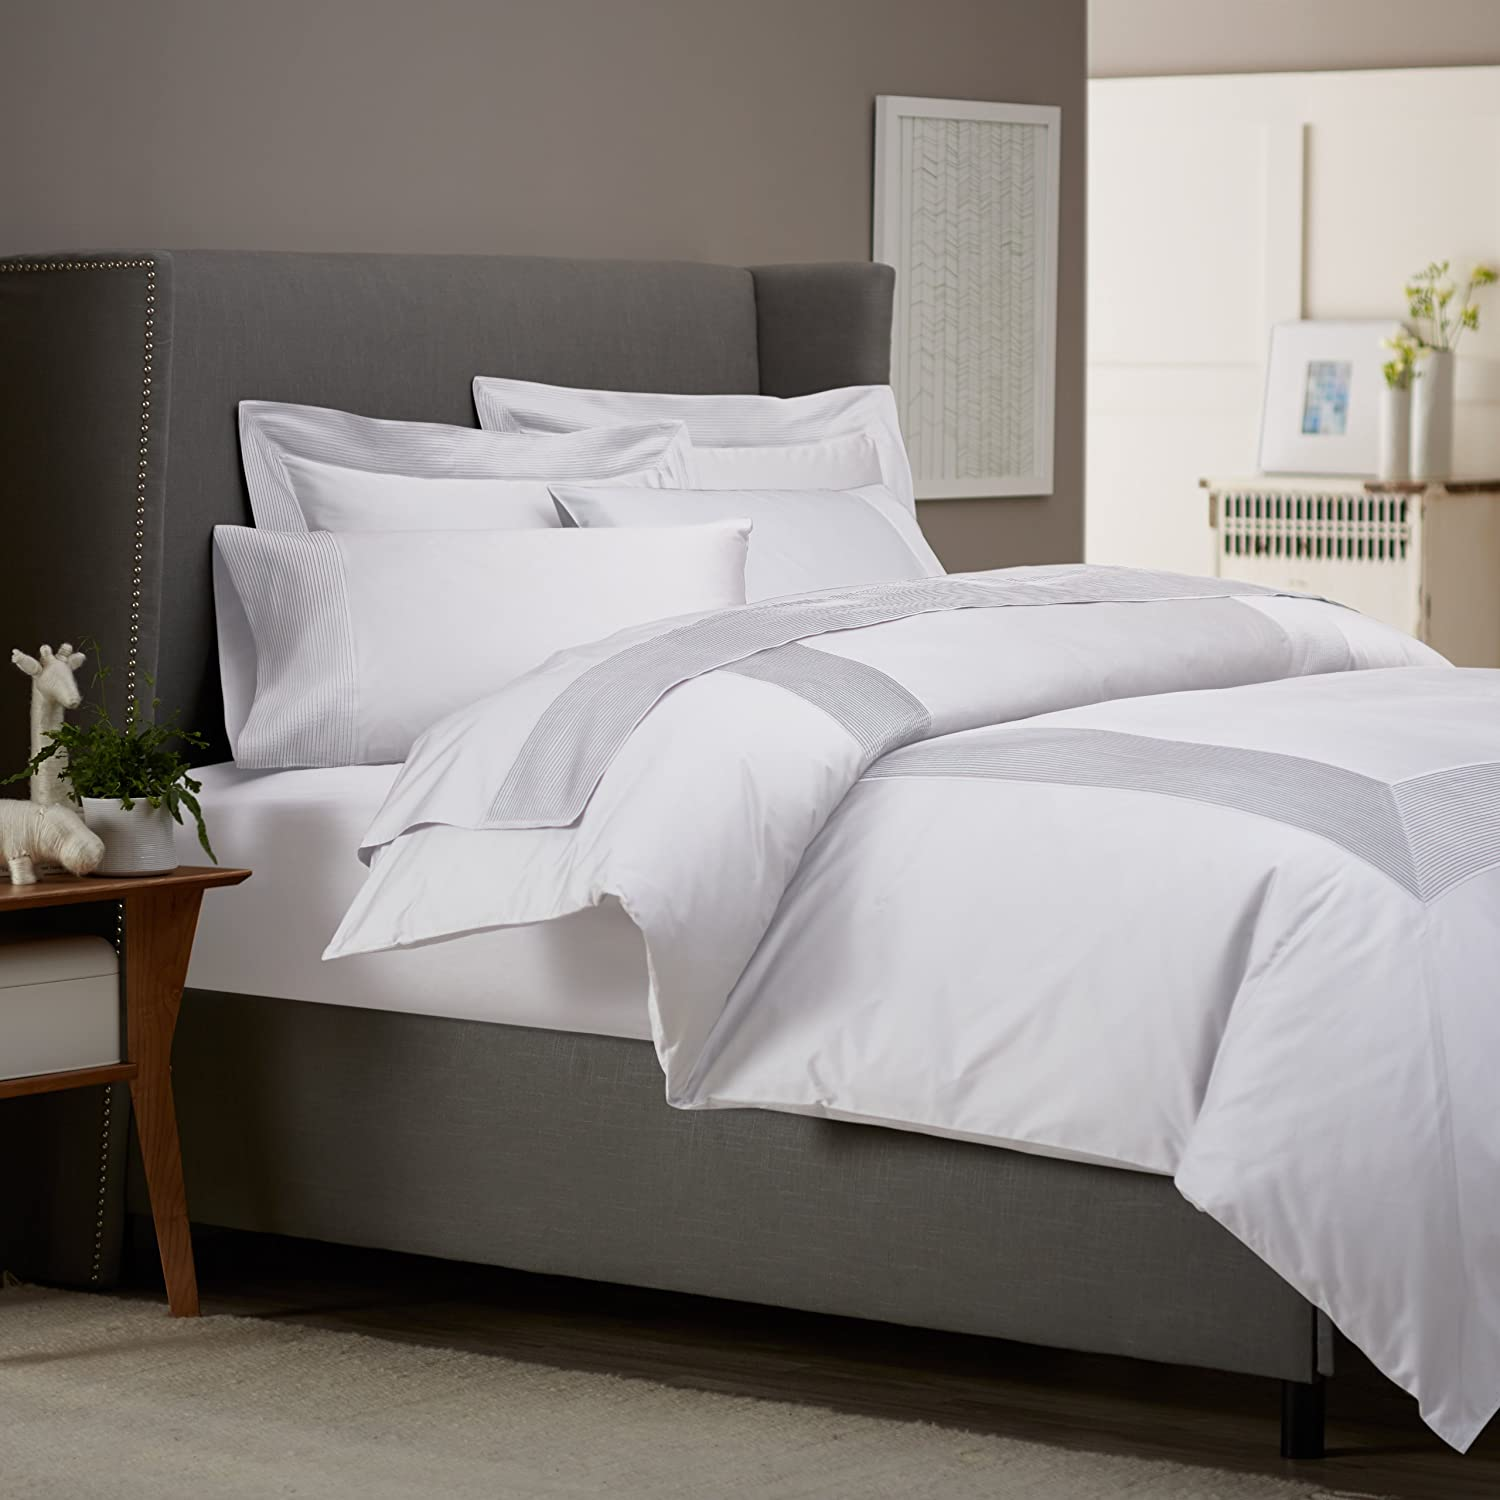 best bedding sets   home reviewed -  best bedding sets